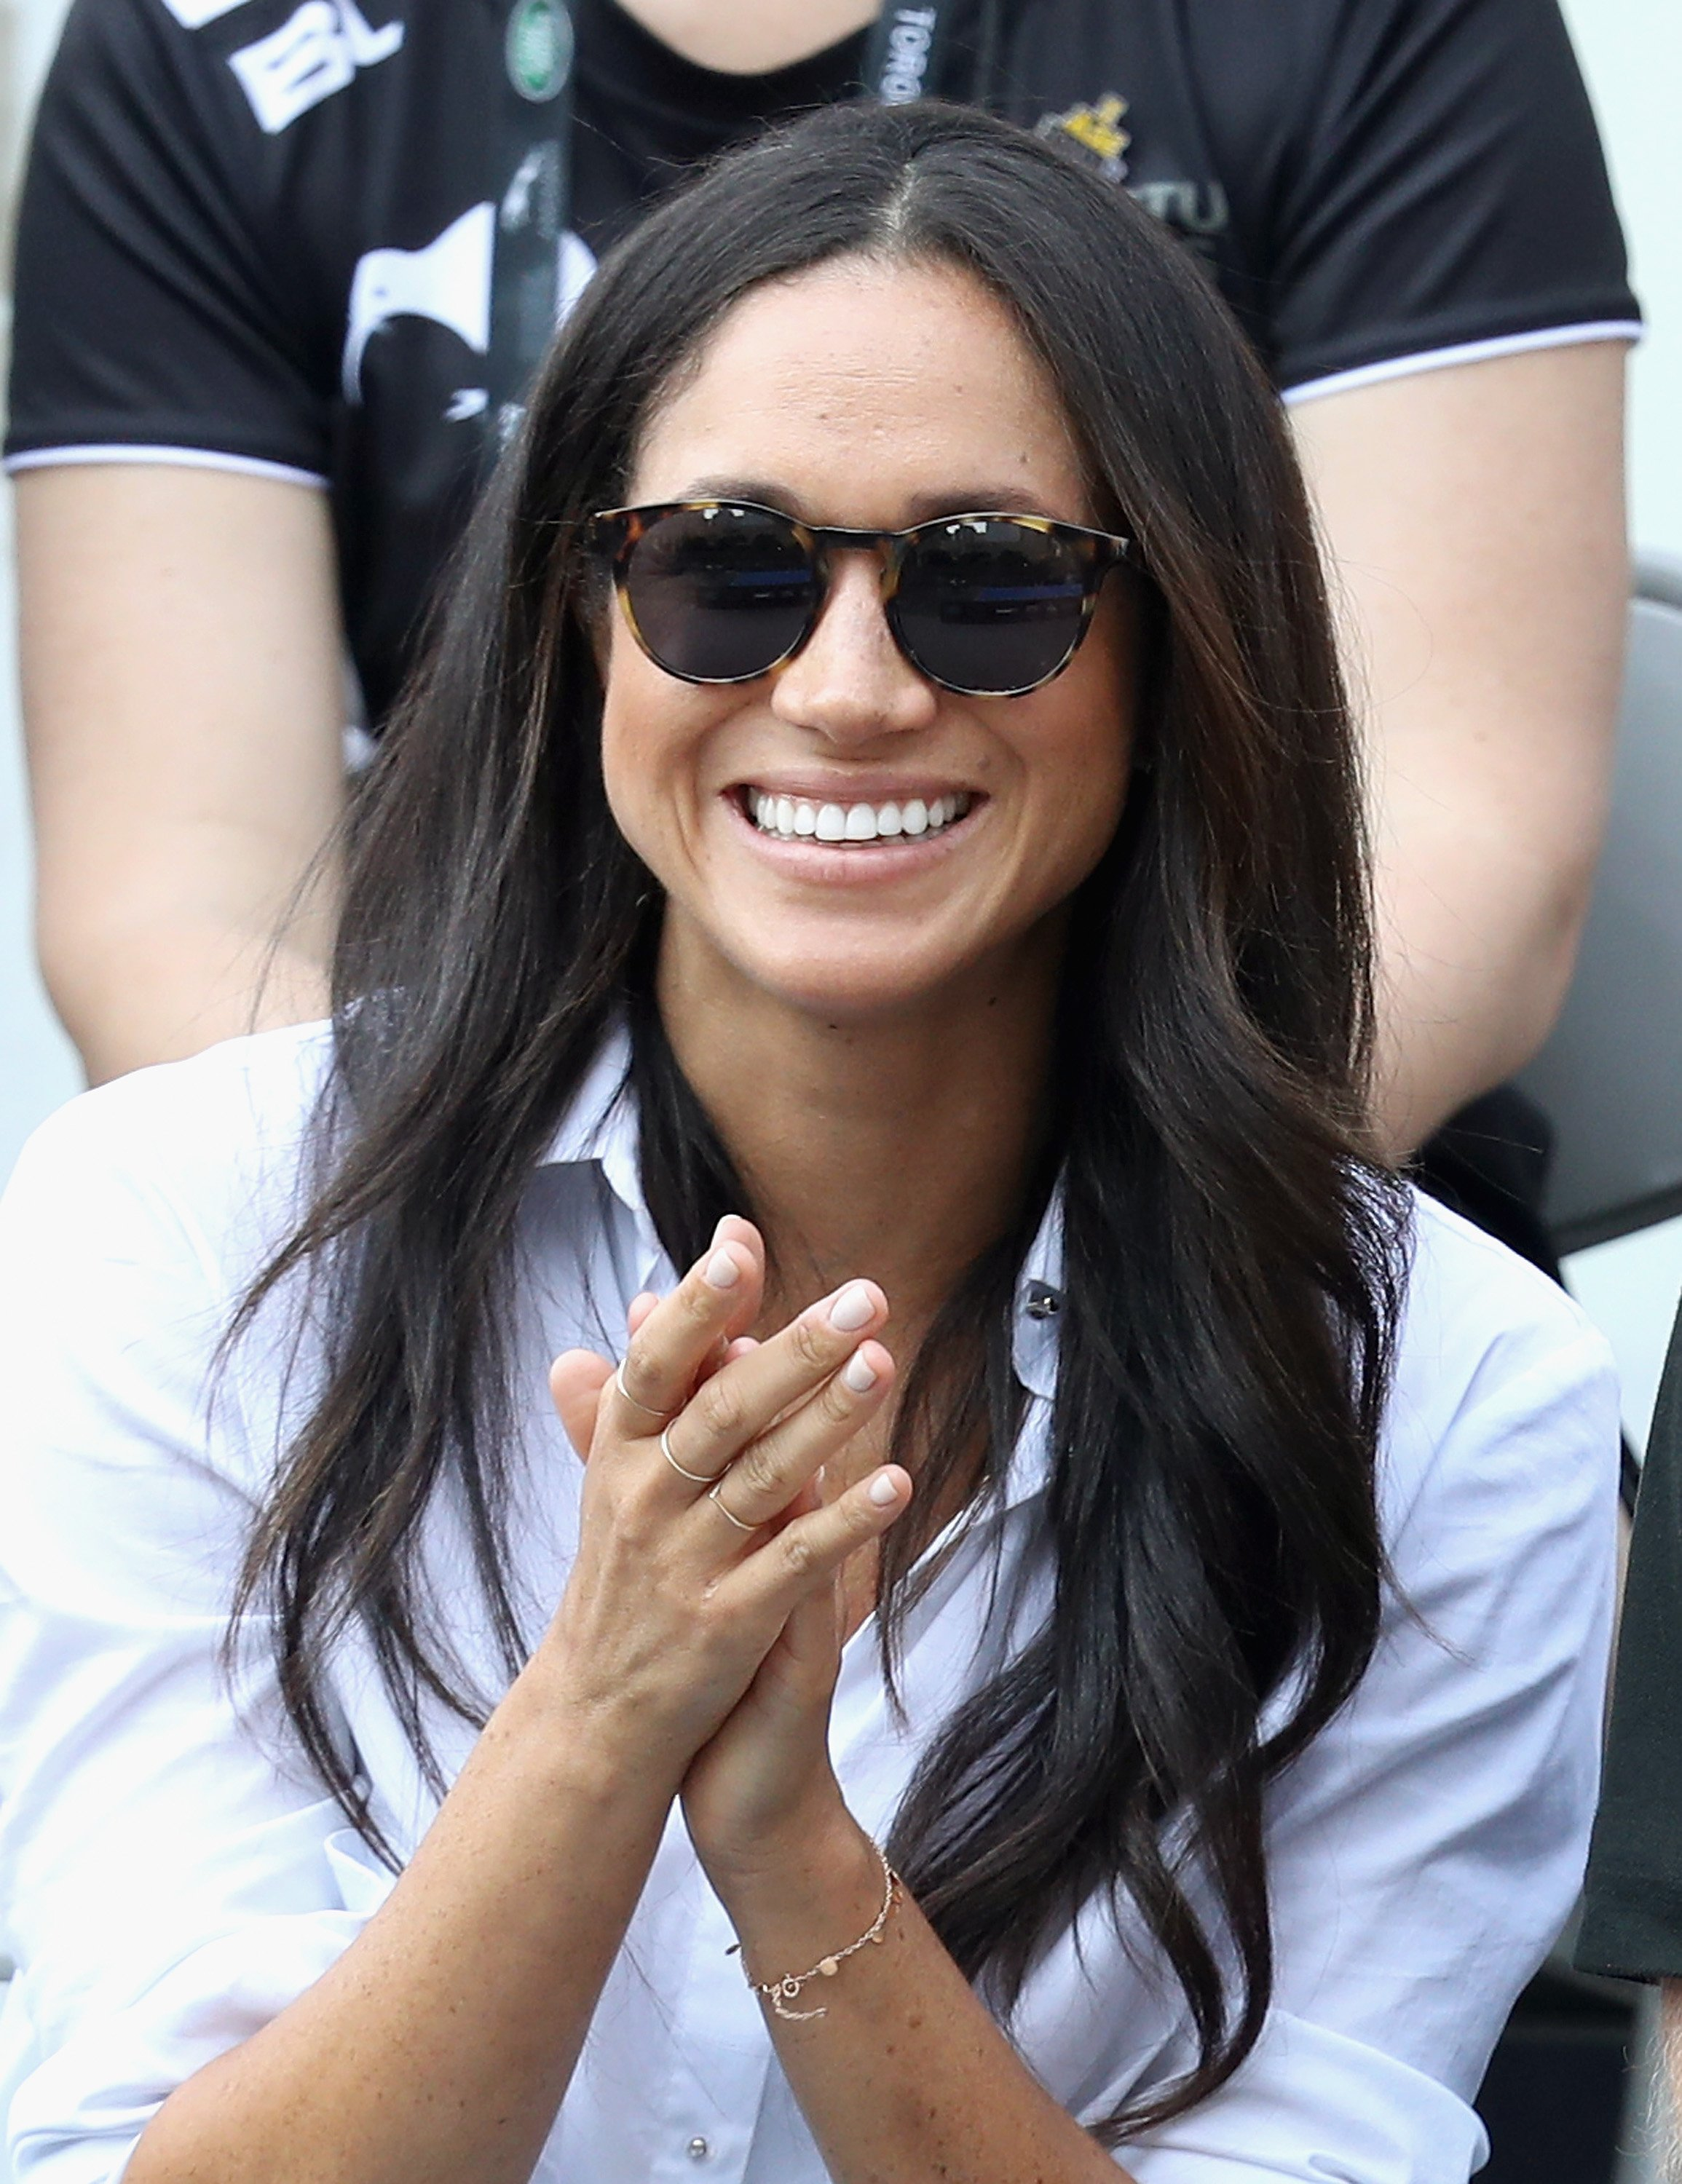 Meghan Markle pictured at a Wheelchair Tennis match during the Invictus Games 2017, Toronto, Canada.   Photo: Getty Images